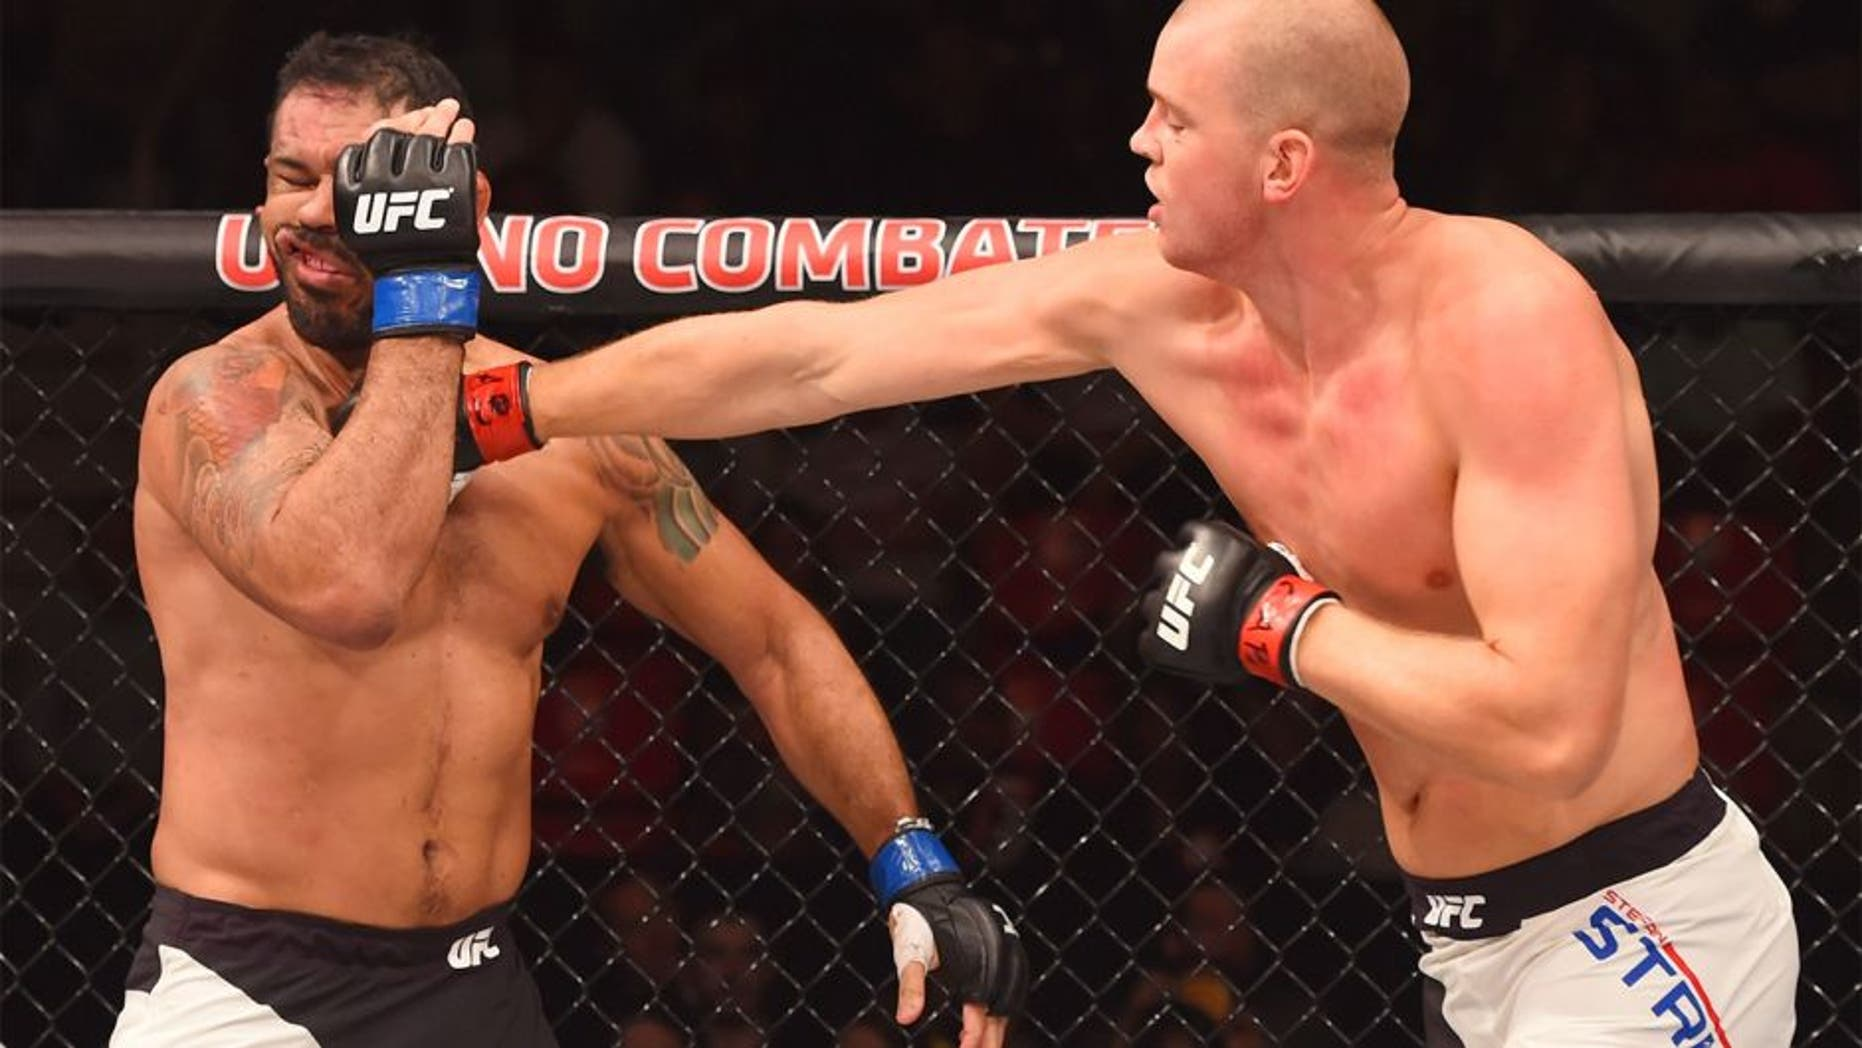 RIO DE JANEIRO, BRAZIL - AUGUST 01: (R-L) Stefan Struve of the Netherlands punches Rodrigo 'Minotauro' Nogueira of Brazil in their heavyweight bout during the UFC 190 event inside HSBC Arena on August 1, 2015 in Rio de Janeiro, Brazil. (Photo by Josh Hedges/Zuffa LLC/Zuffa LLC via Getty Images)